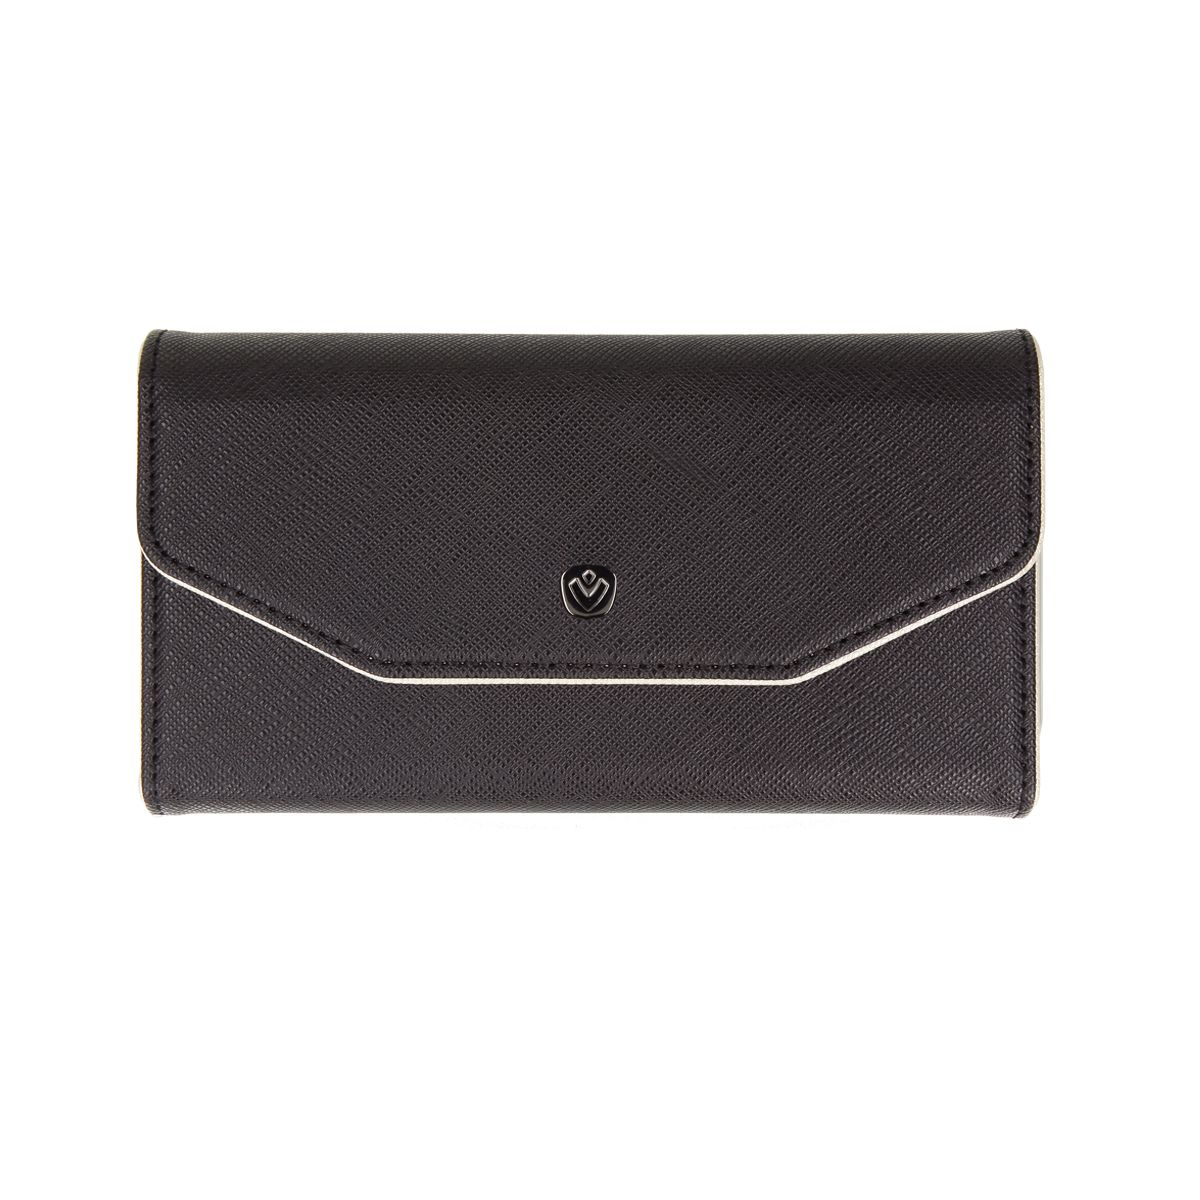 clutch black nuit iphone 11 pro max